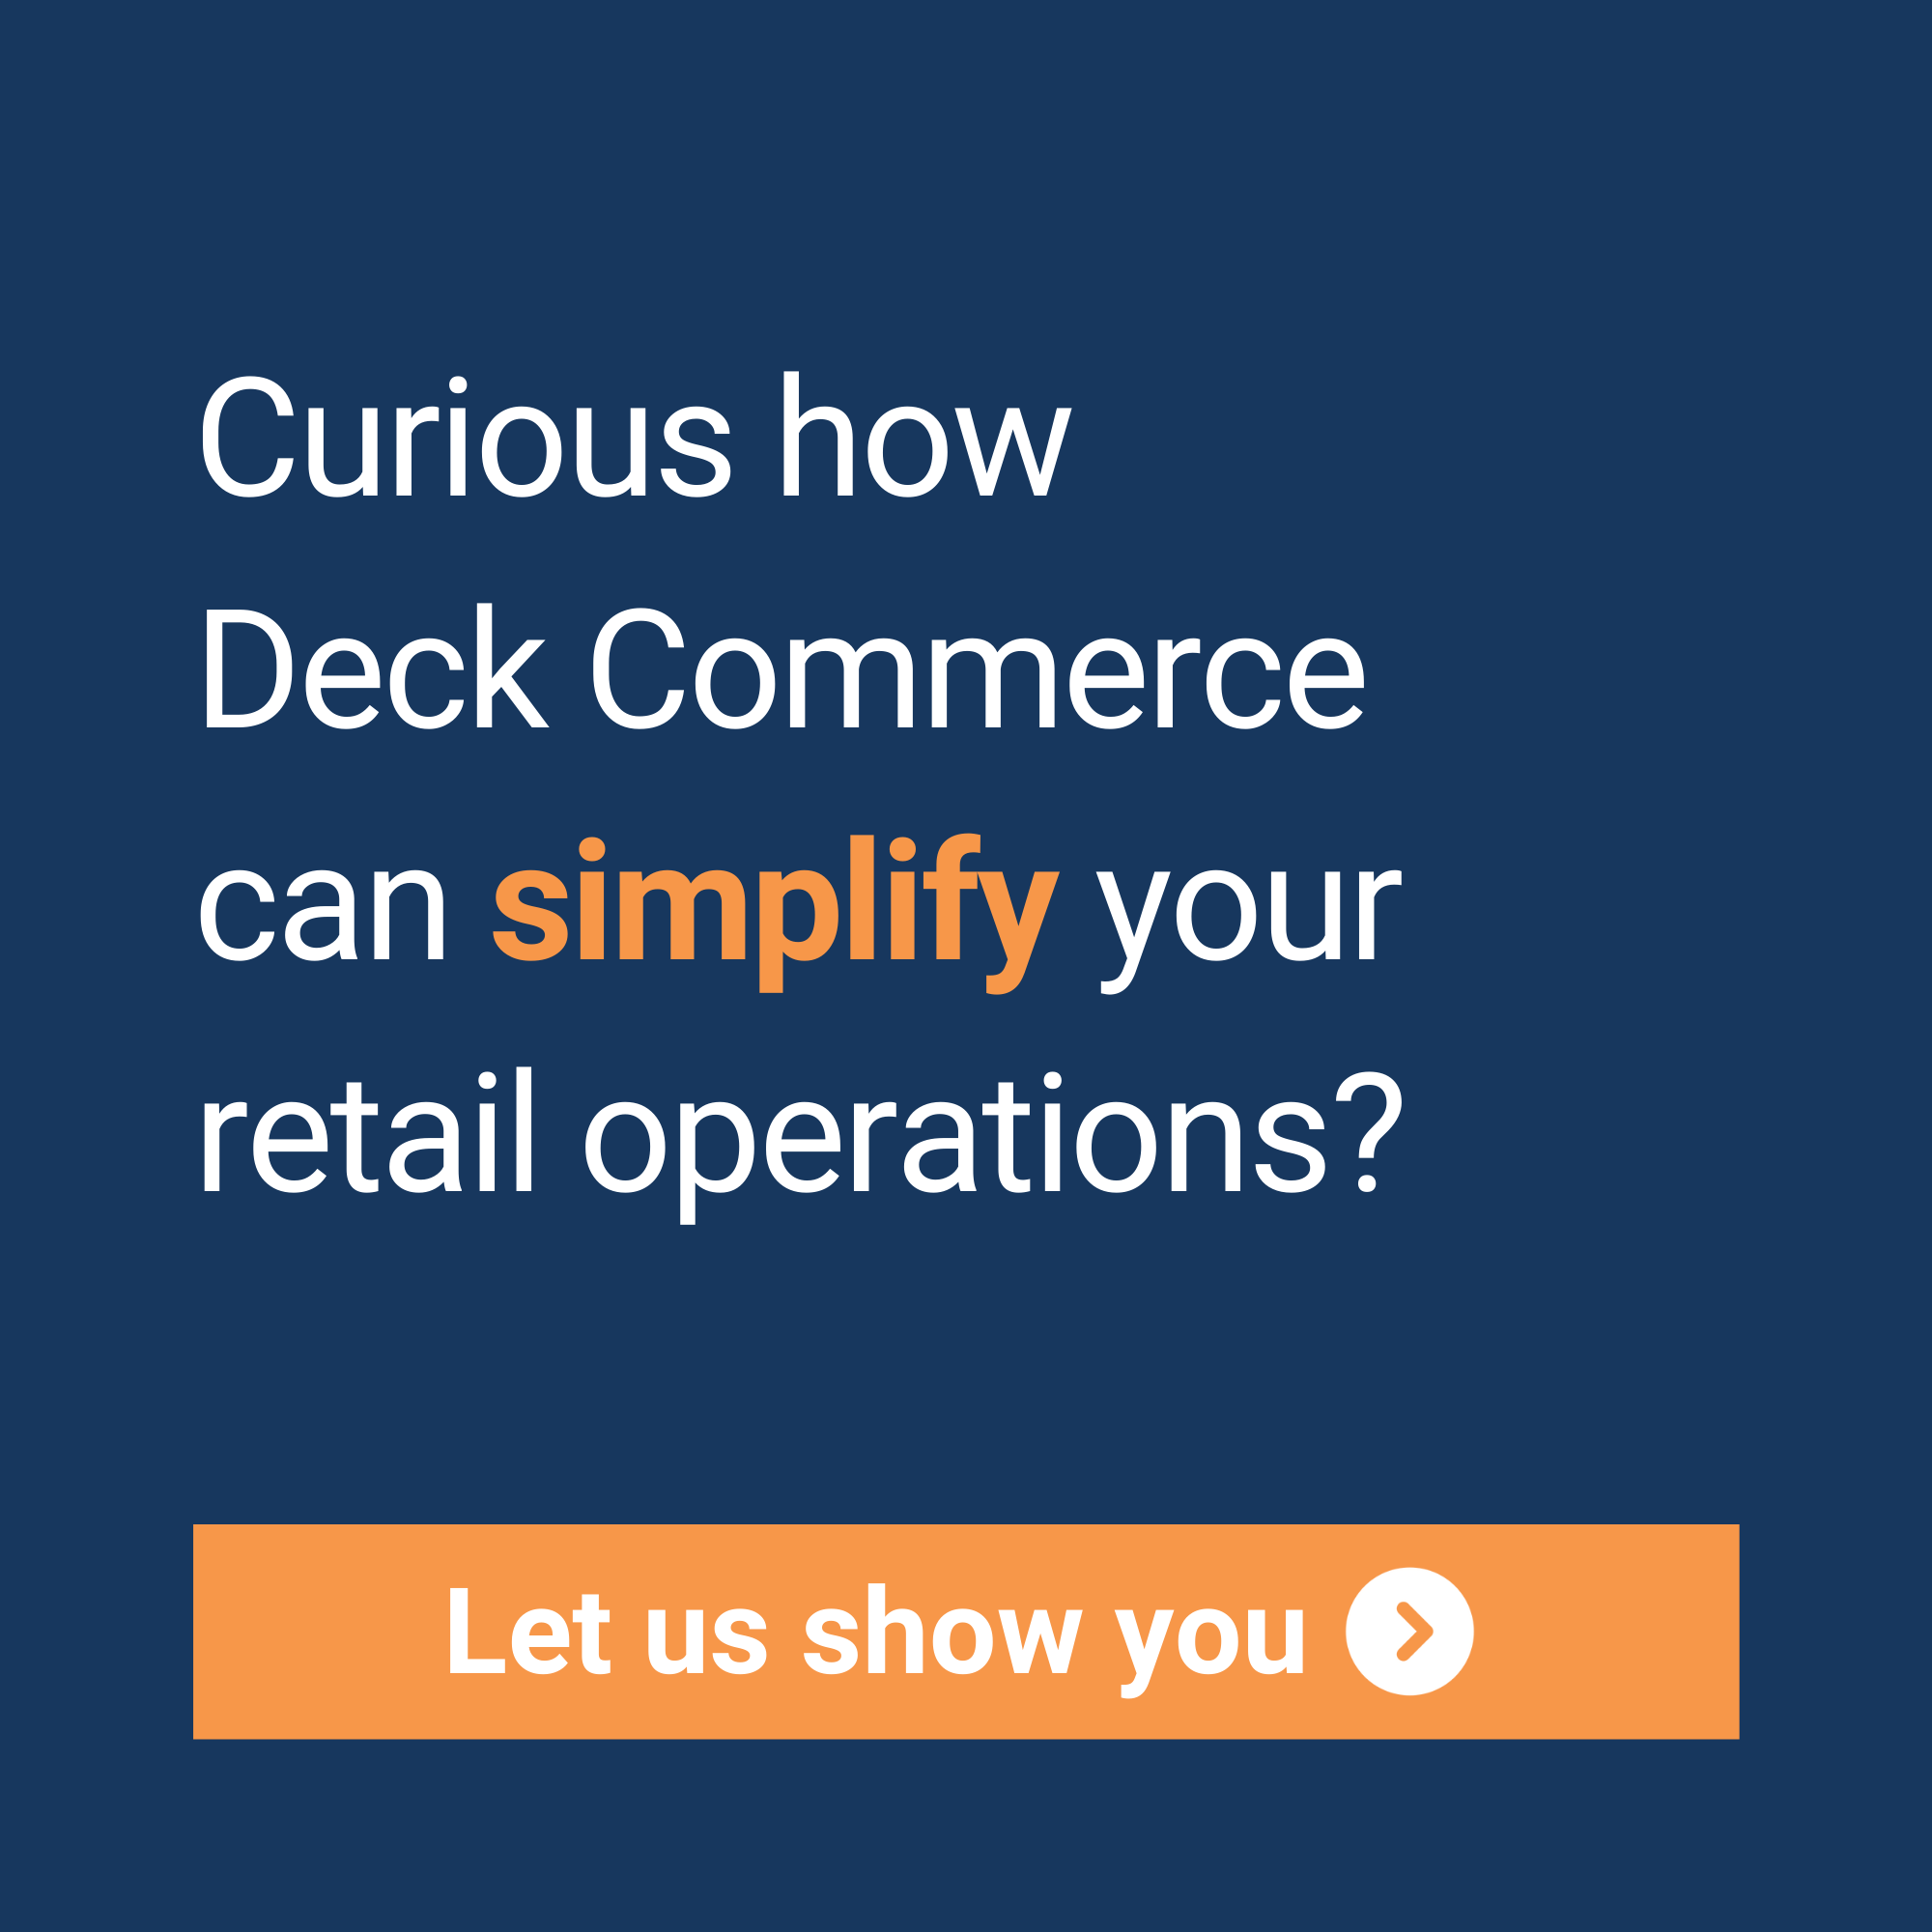 Deck Commerce order management helps simplify retail